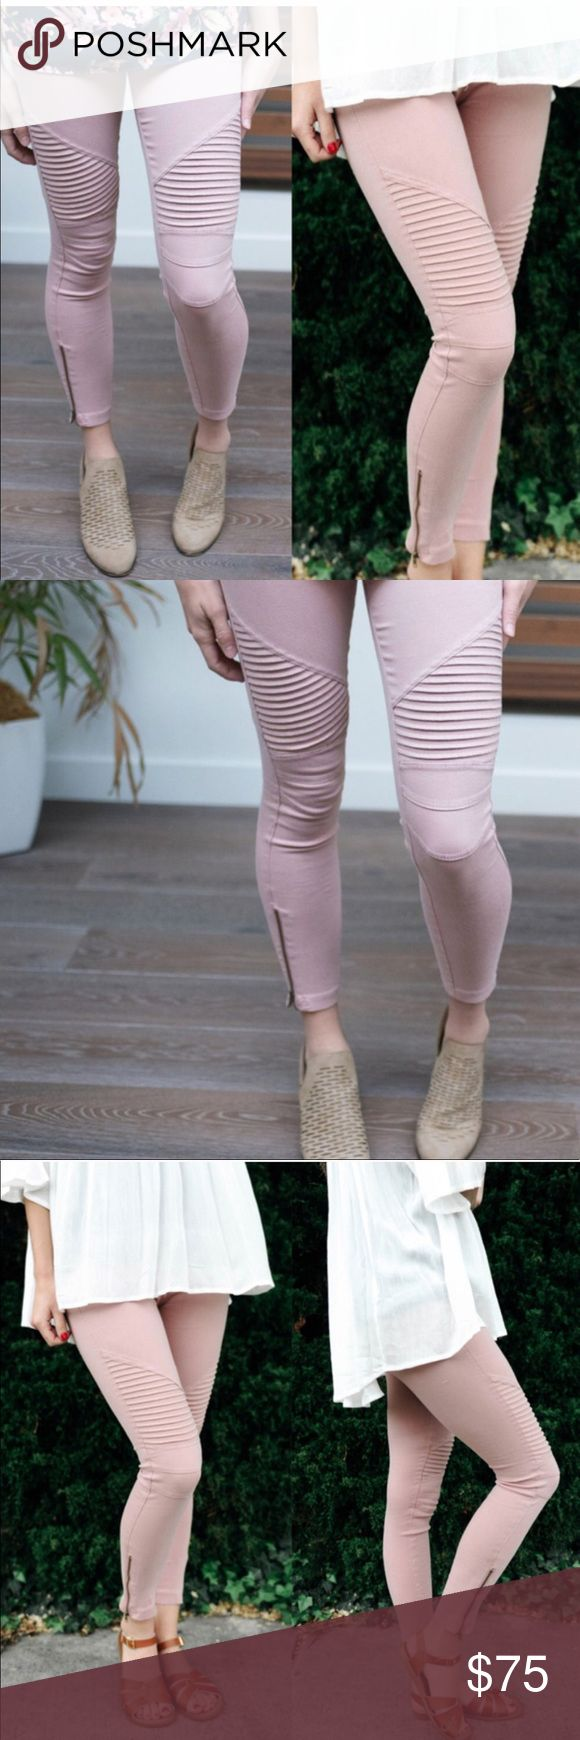 COMING SOON Dusty Rose Stretchy Biker Pants Adorable dusty rose colored stretchy biker jeans with zippers at the bottom of the legs. Picture 4 is the color of the jeans. Sizes s/m and l/xl. Aluna Levi Pants Skinny